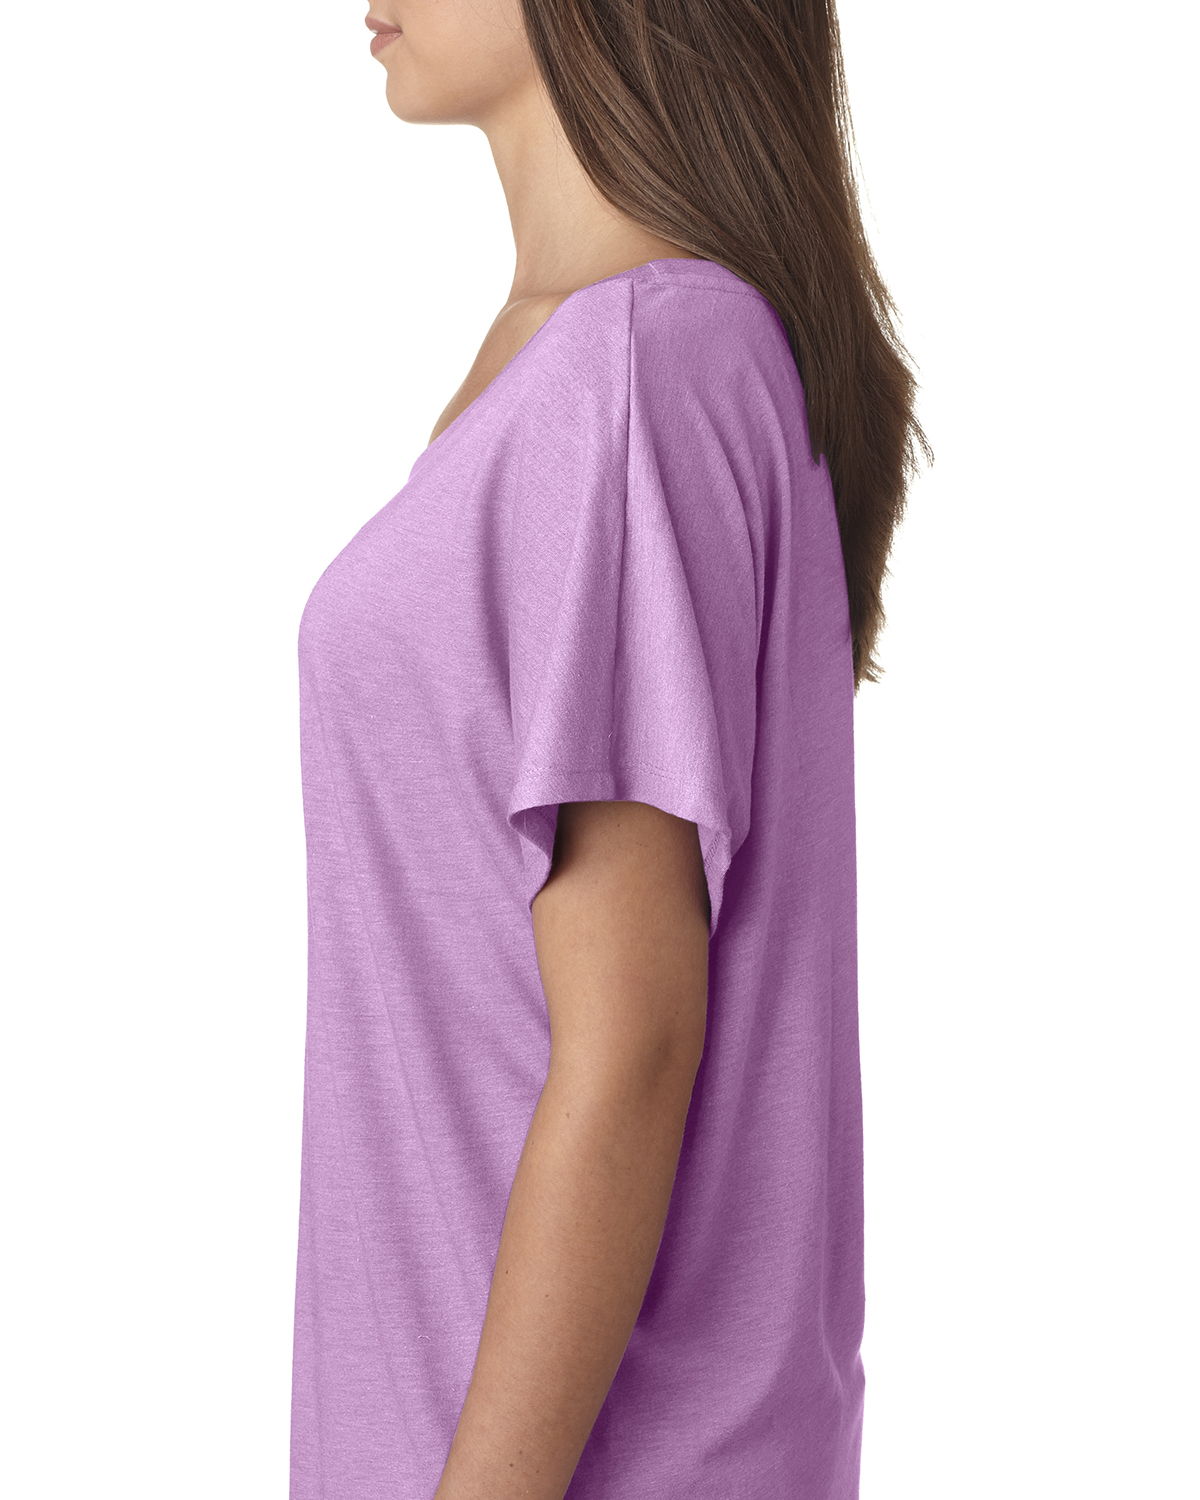 NEW-Next-Level-Junior-Fit-Triblend-Dolman-Sleeve-Relexed-Fit-T-Shirt-B-6760 thumbnail 31